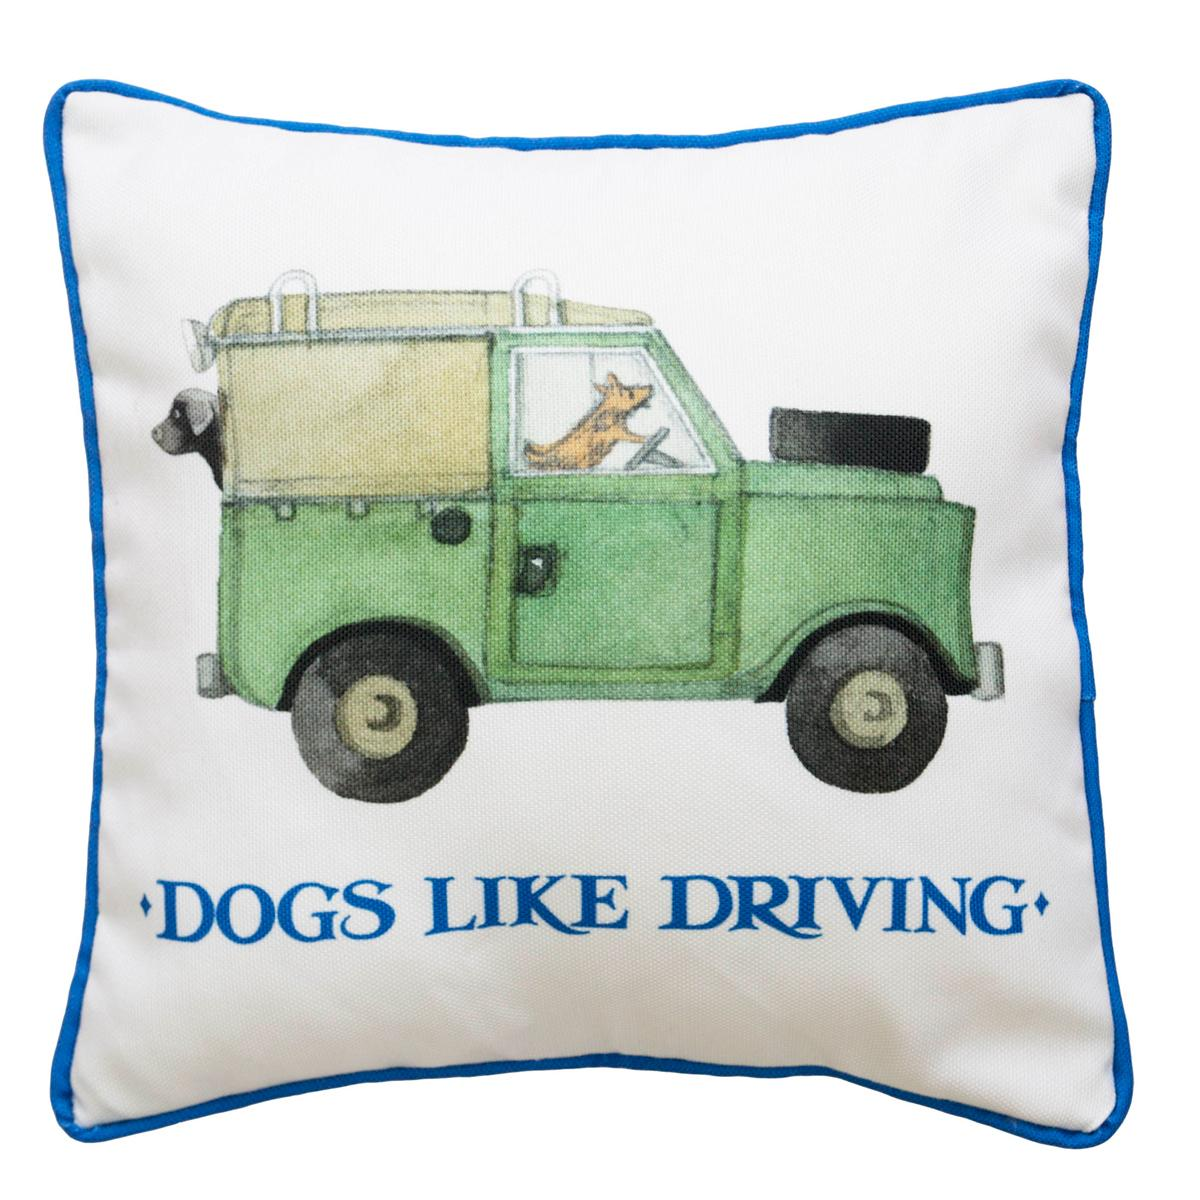 Bargain Multi Emma Bridgewater Dogs Like Driving Cushion Stockists